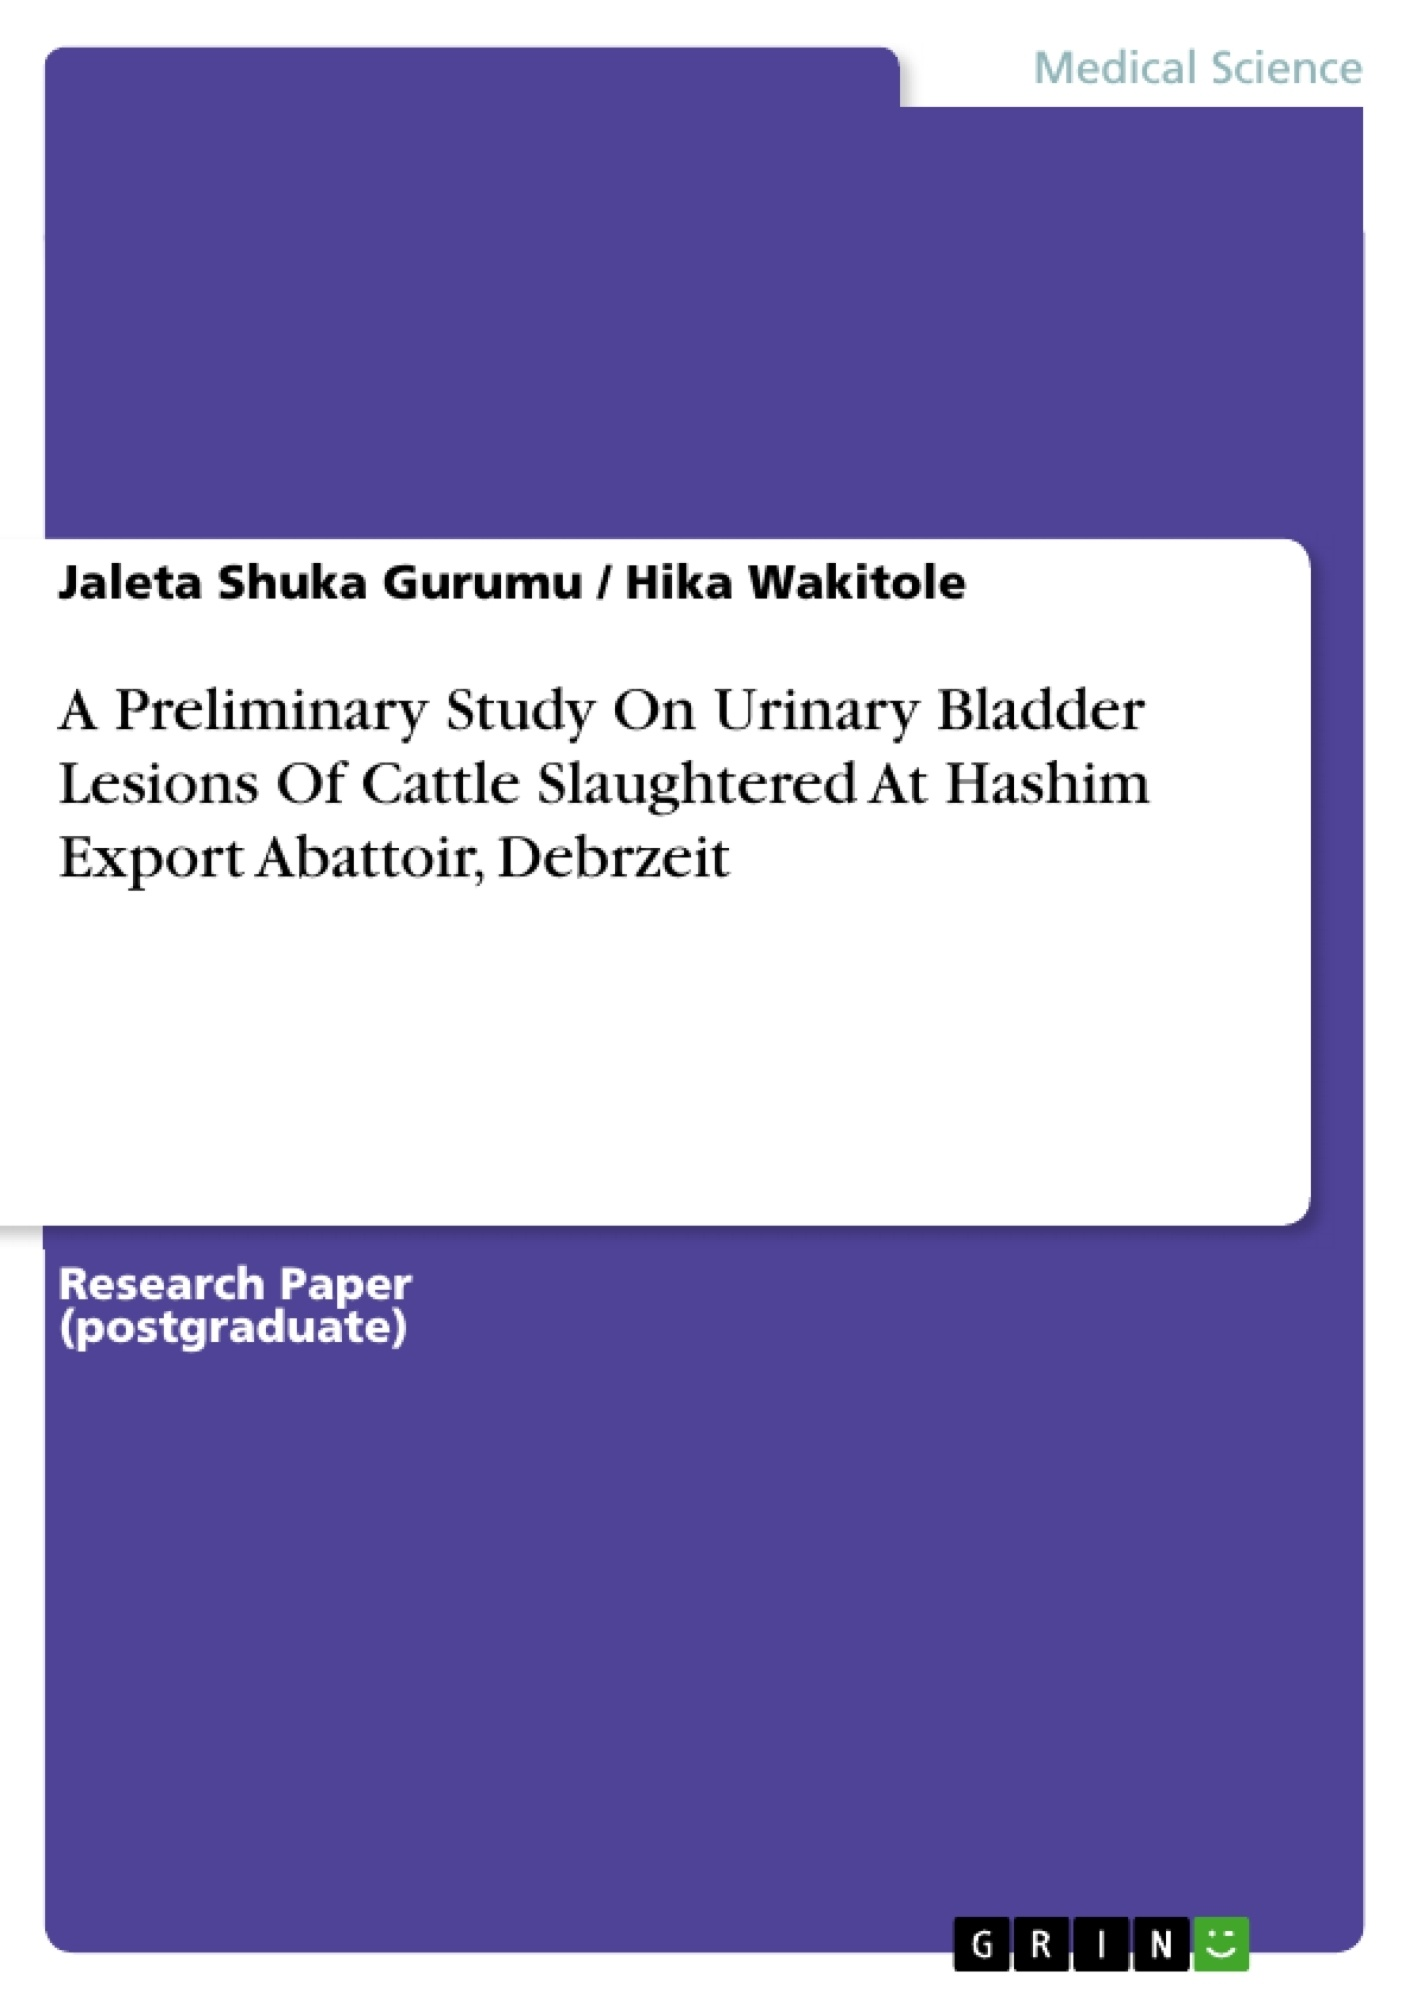 Title: A Preliminary Study On Urinary Bladder Lesions Of Cattle Slaughtered At Hashim Export Abattoir, Debrzeit